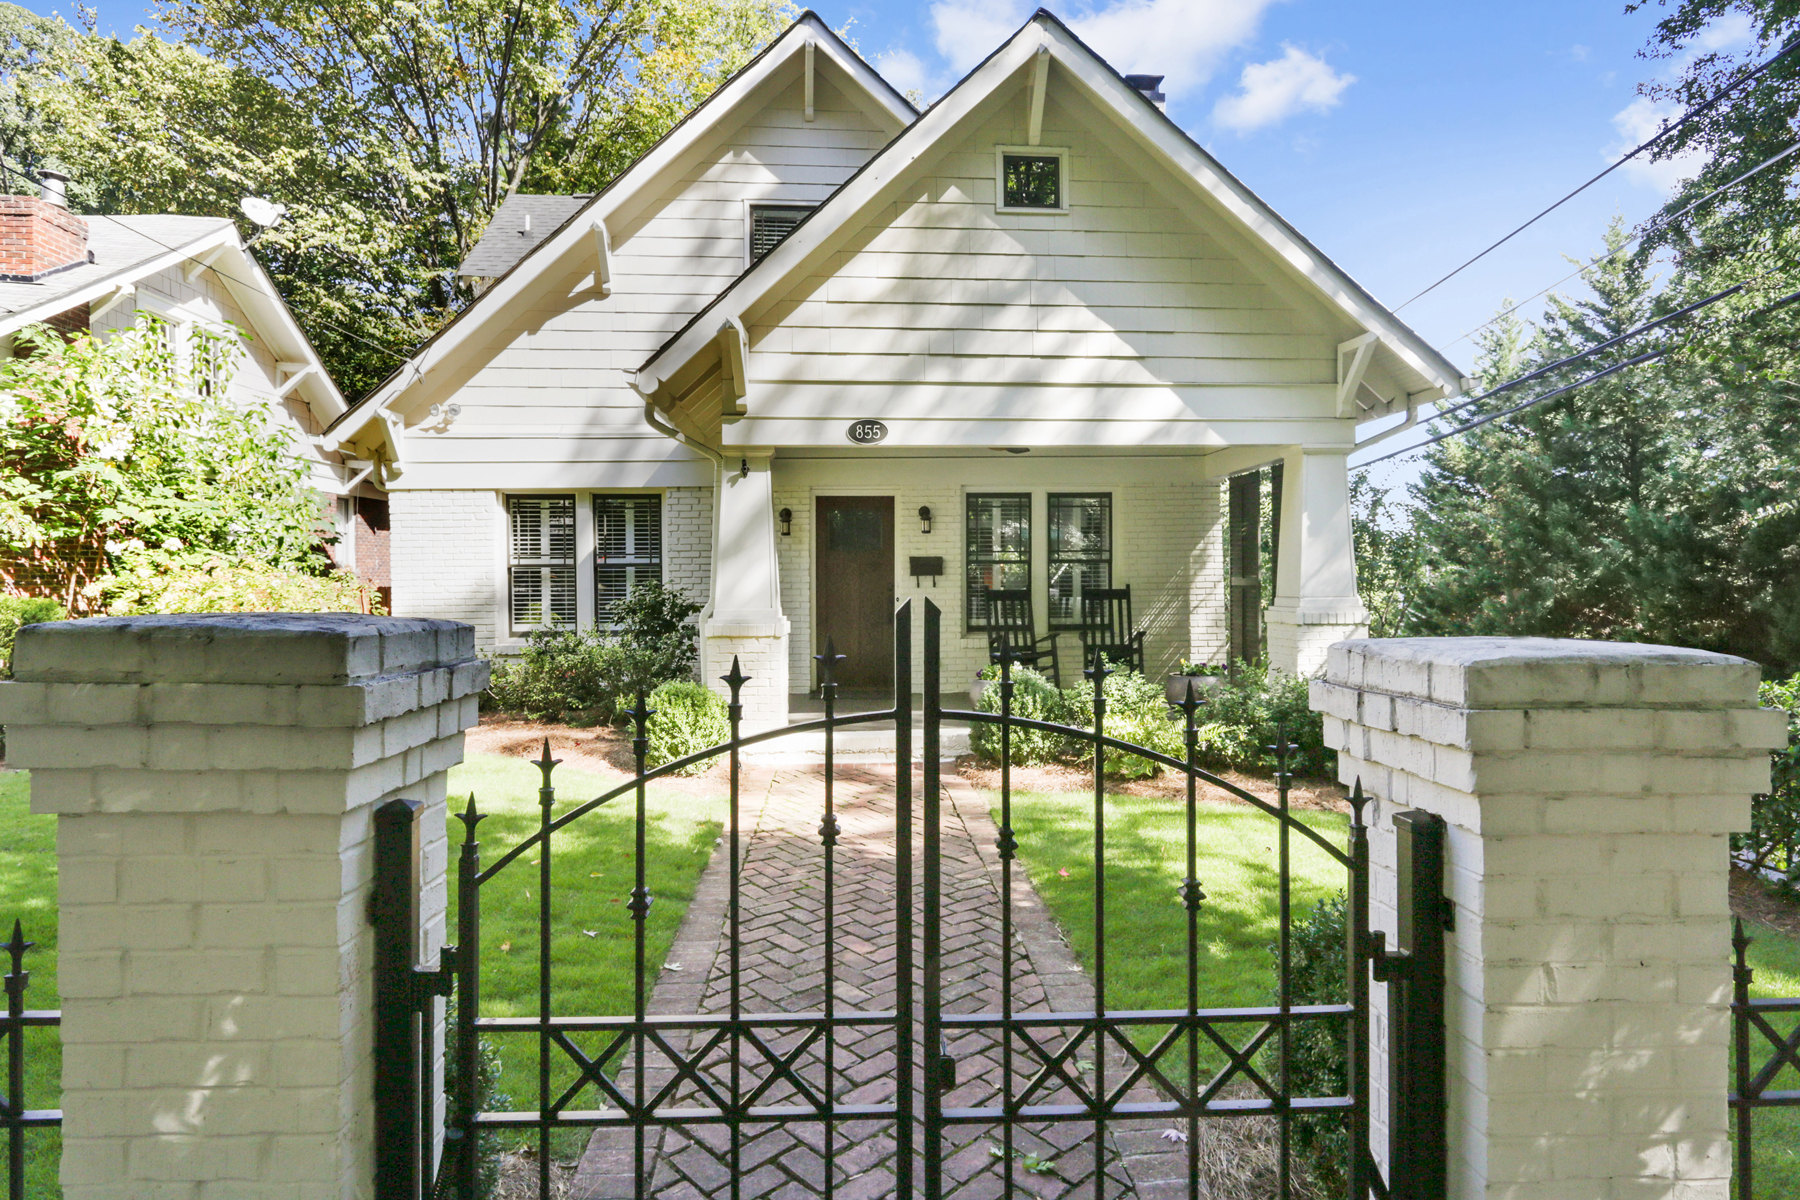 Single Family Home for Sale at Prettiest Craftsman Bungalow in Piedmont Park 855 Argonne Avenue NE Midtown, Atlanta, Georgia, 30308 United States